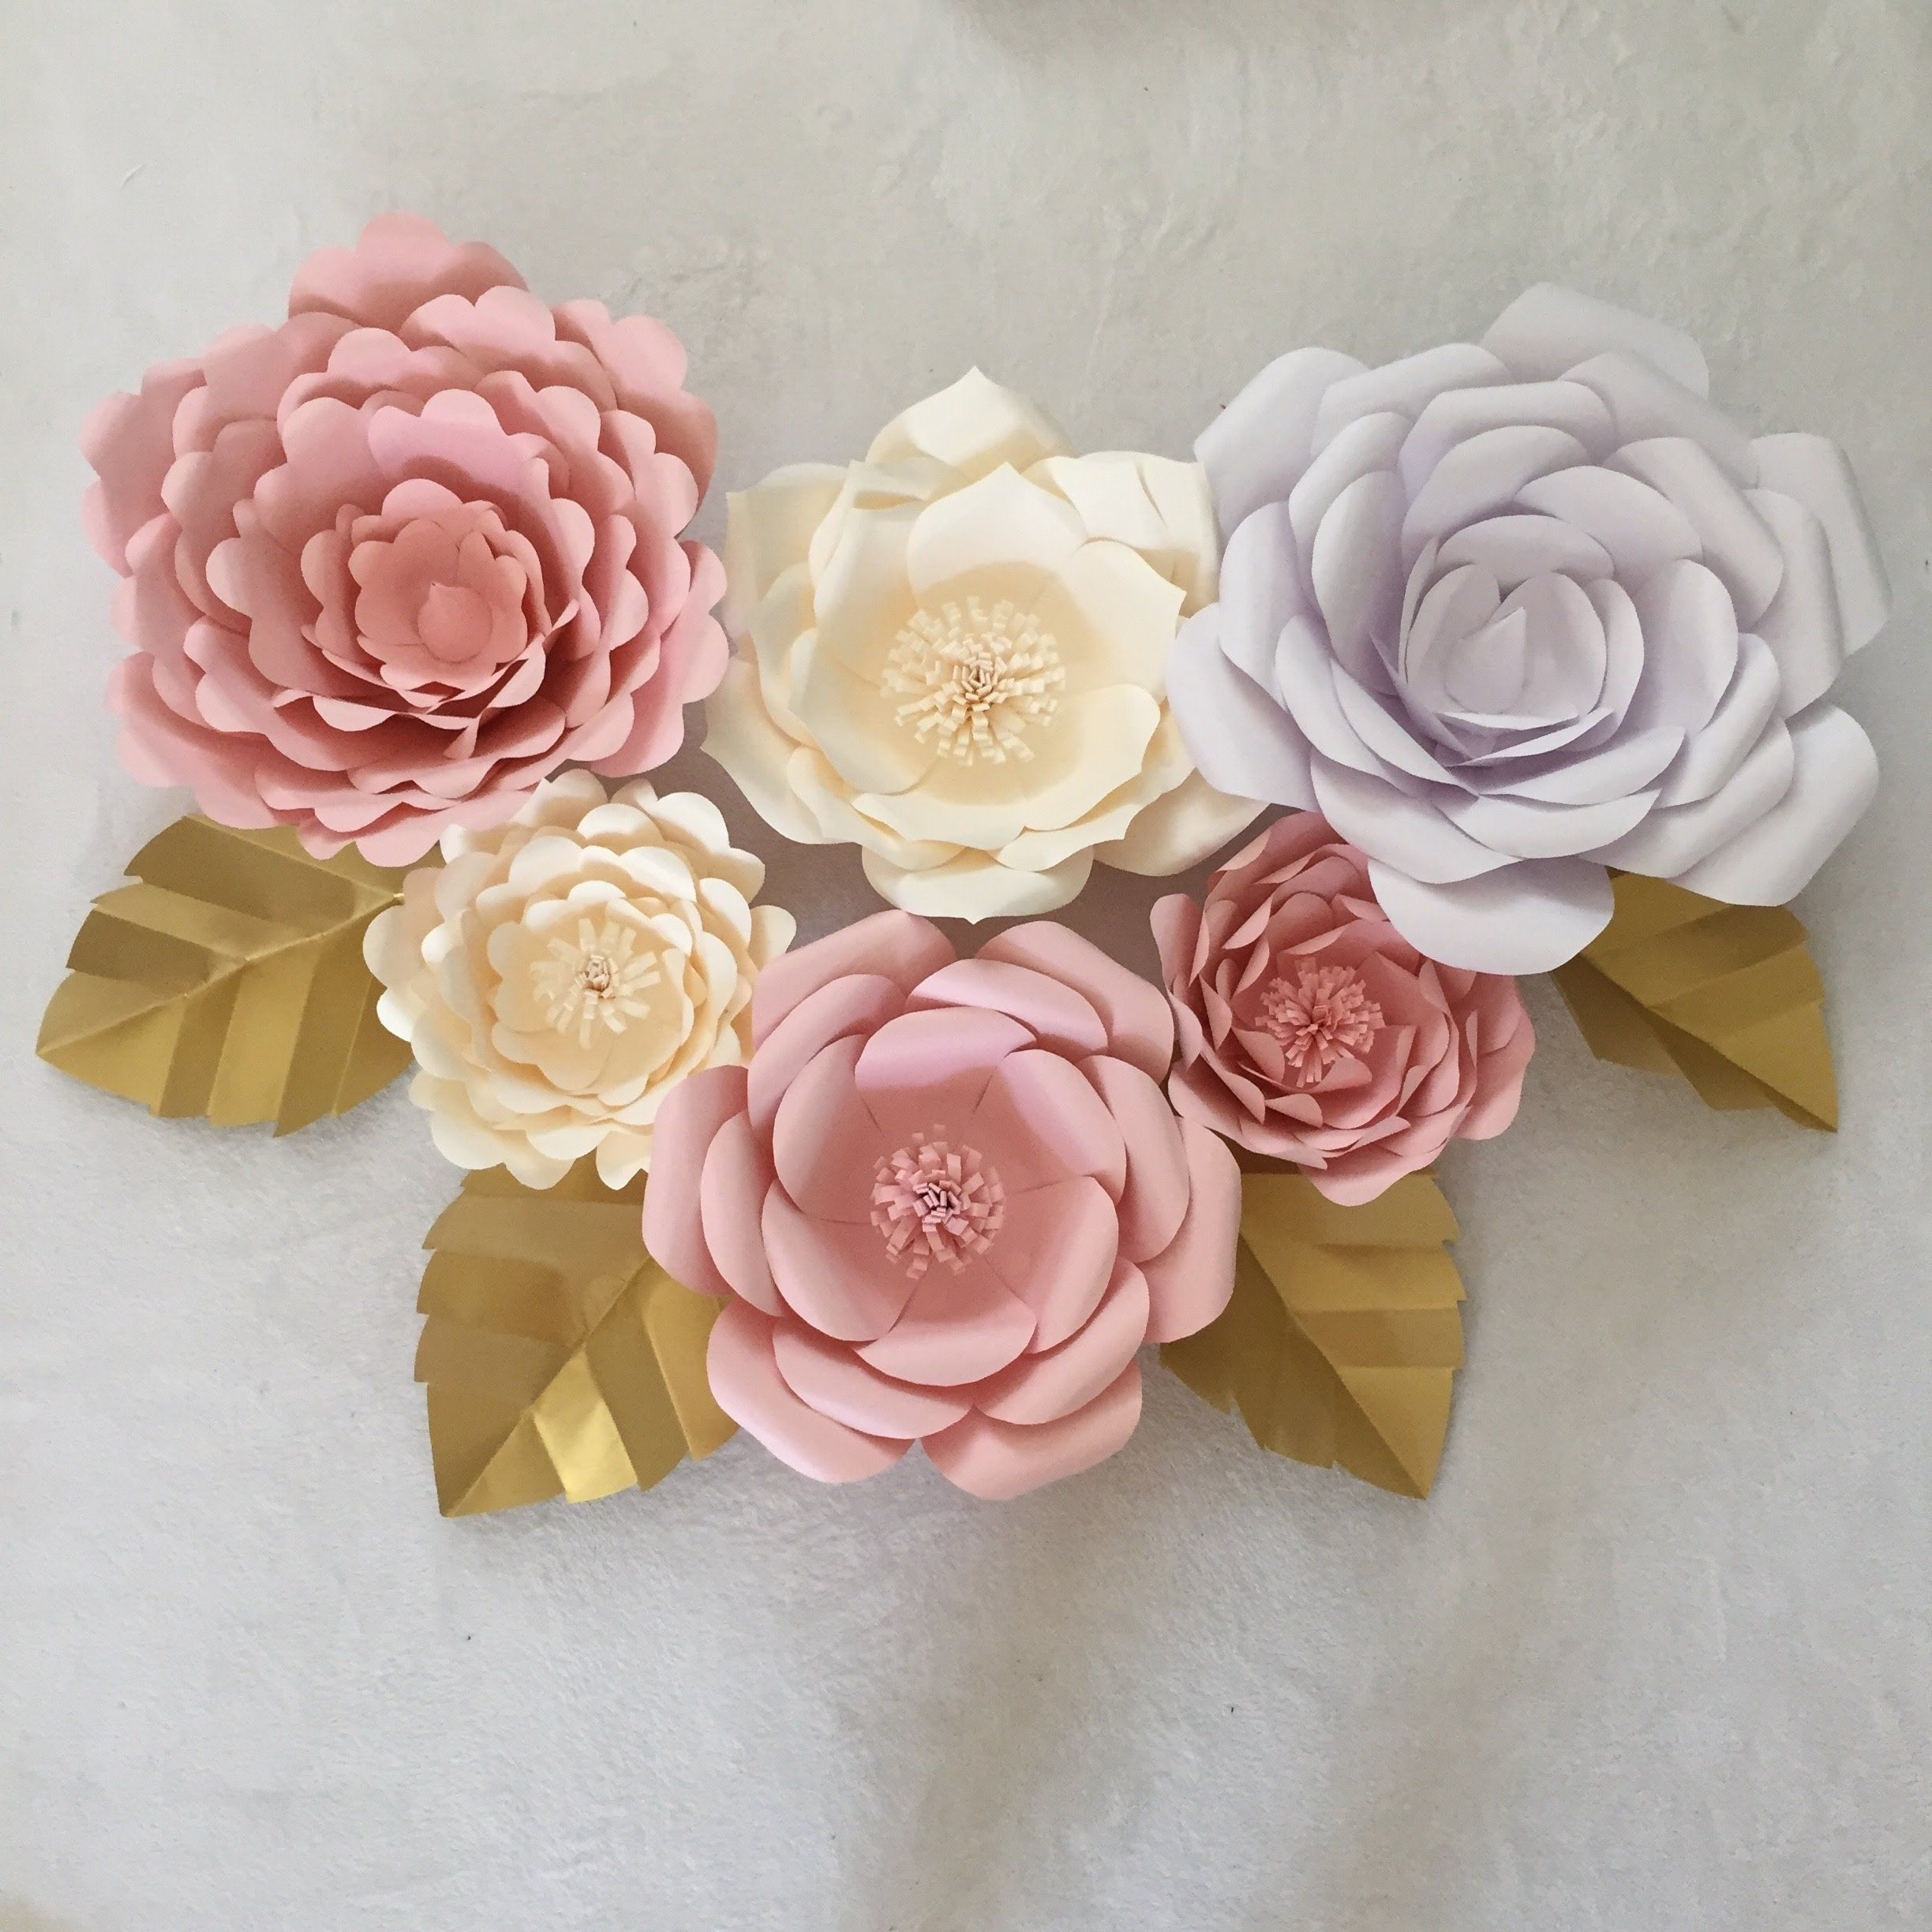 Pin by nataly maximova on paper crafting ideas pinterest diy paper flower backdrop paper wall flowers diy big paper flowers paper flower mightylinksfo